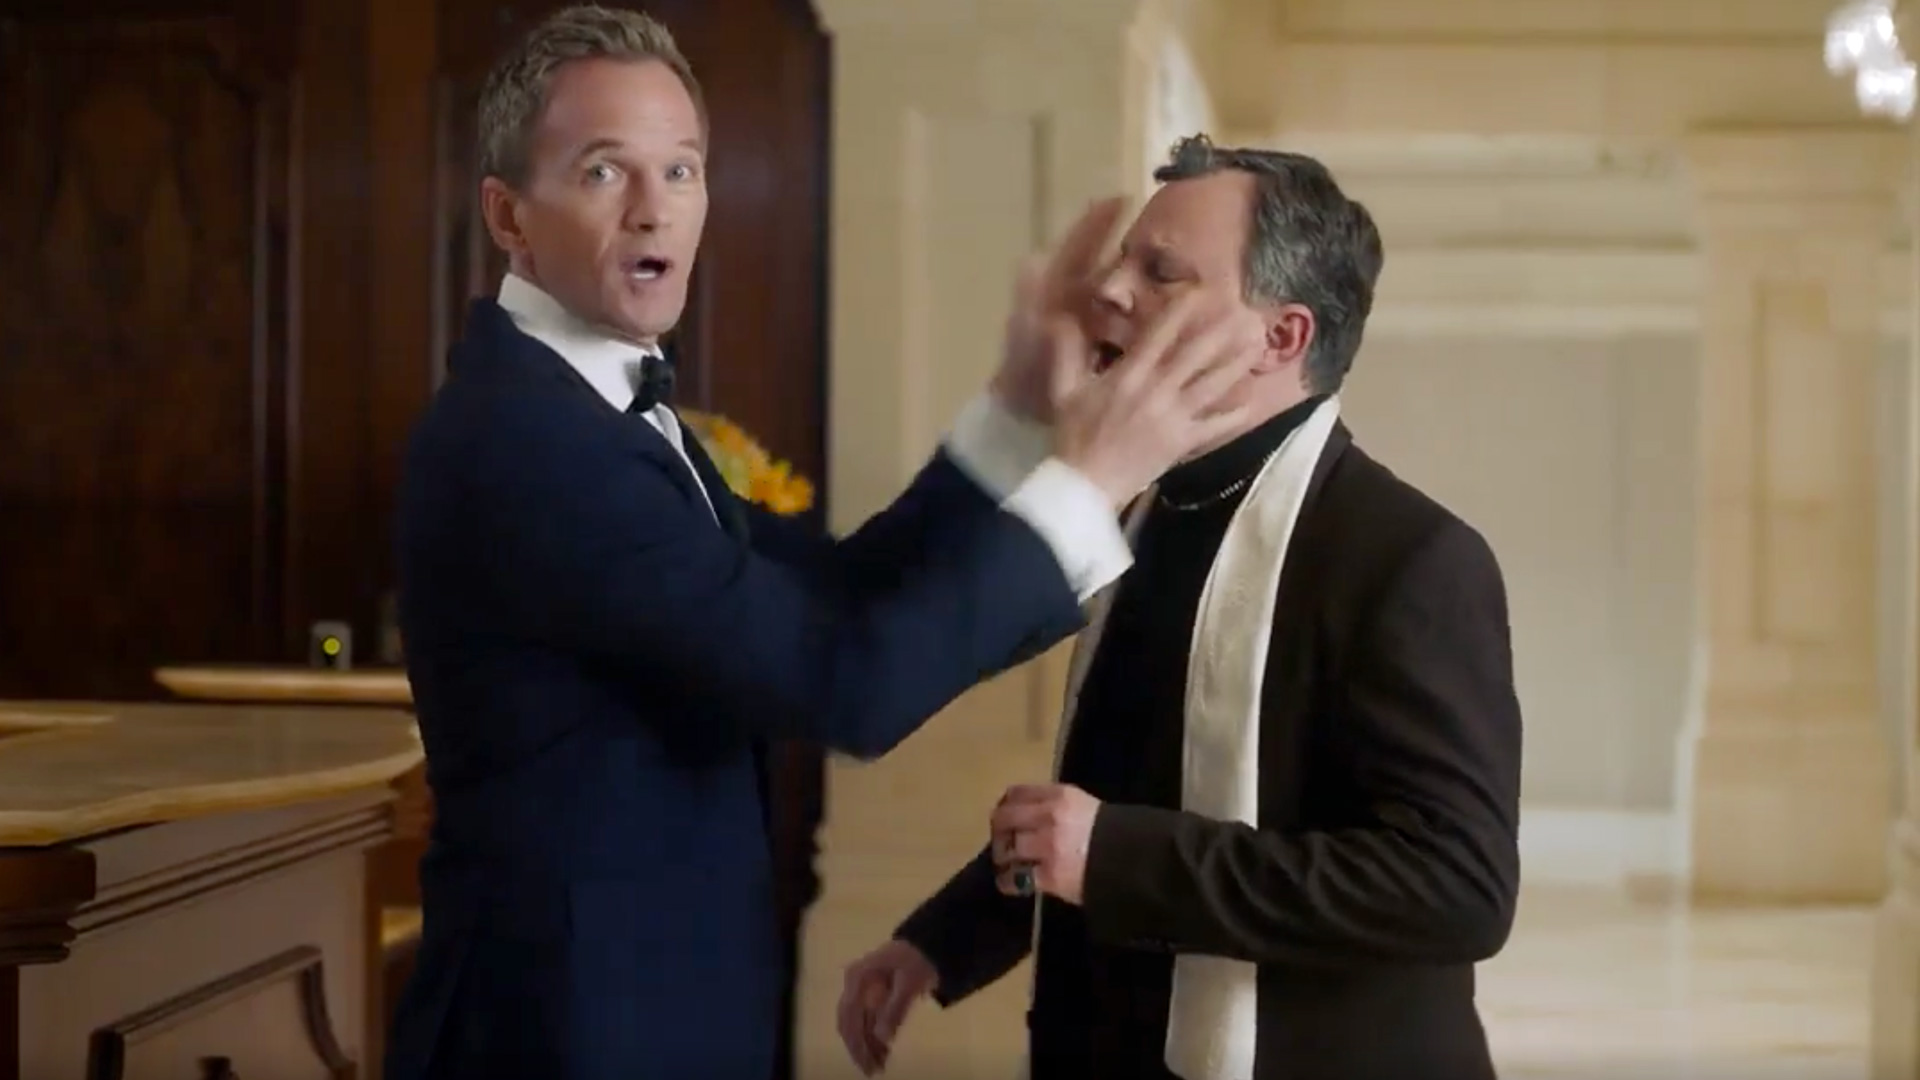 neil patrick harris grabbing someone's face